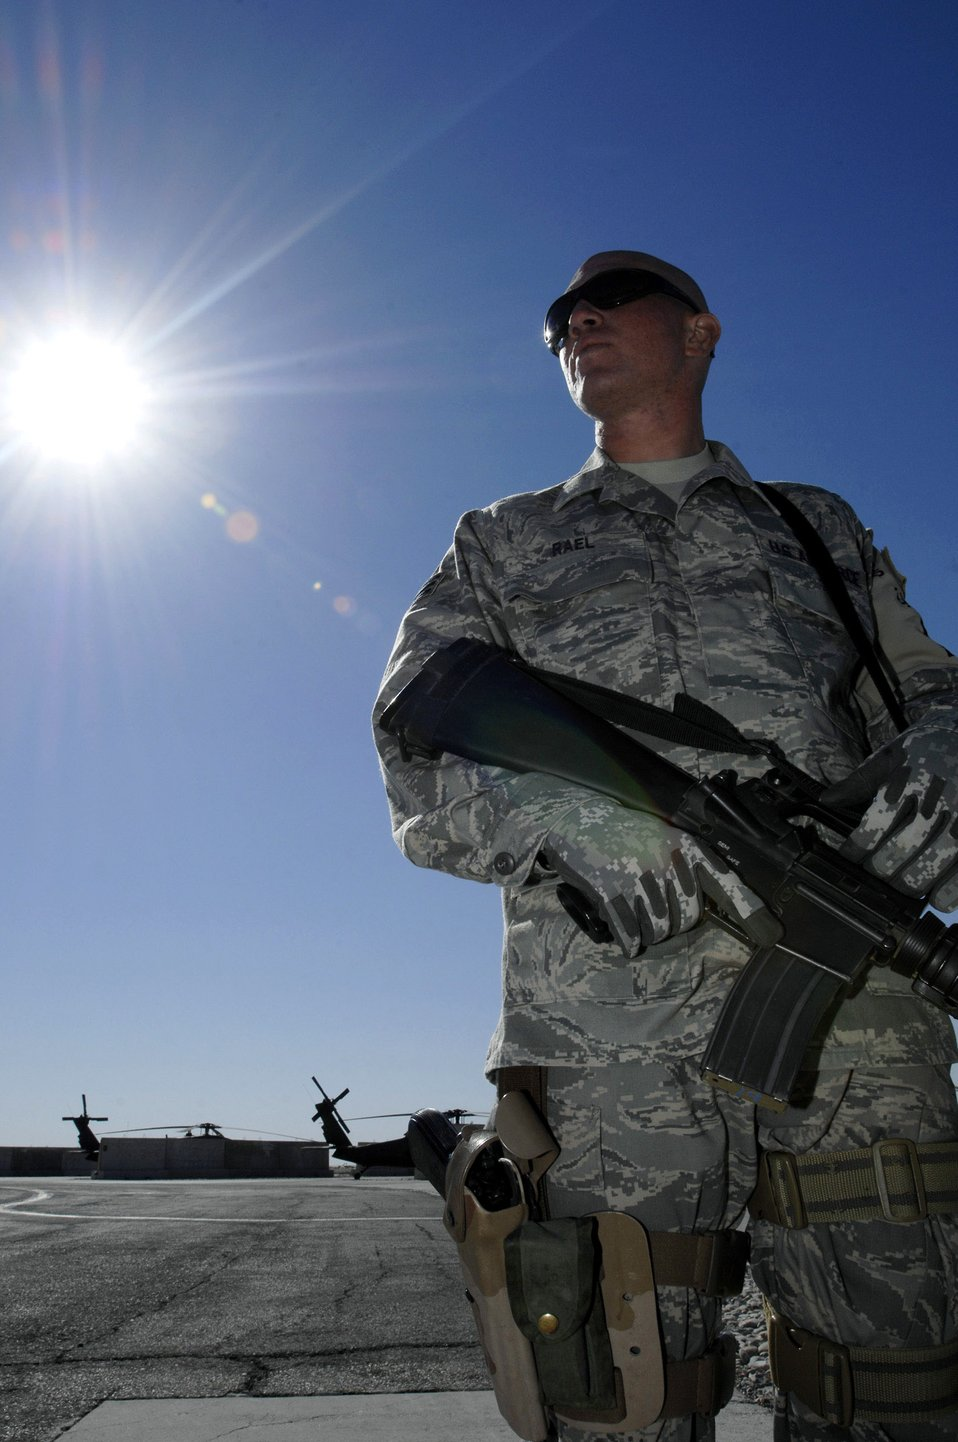 Force protection Airmen keeps vigilance in the forefront